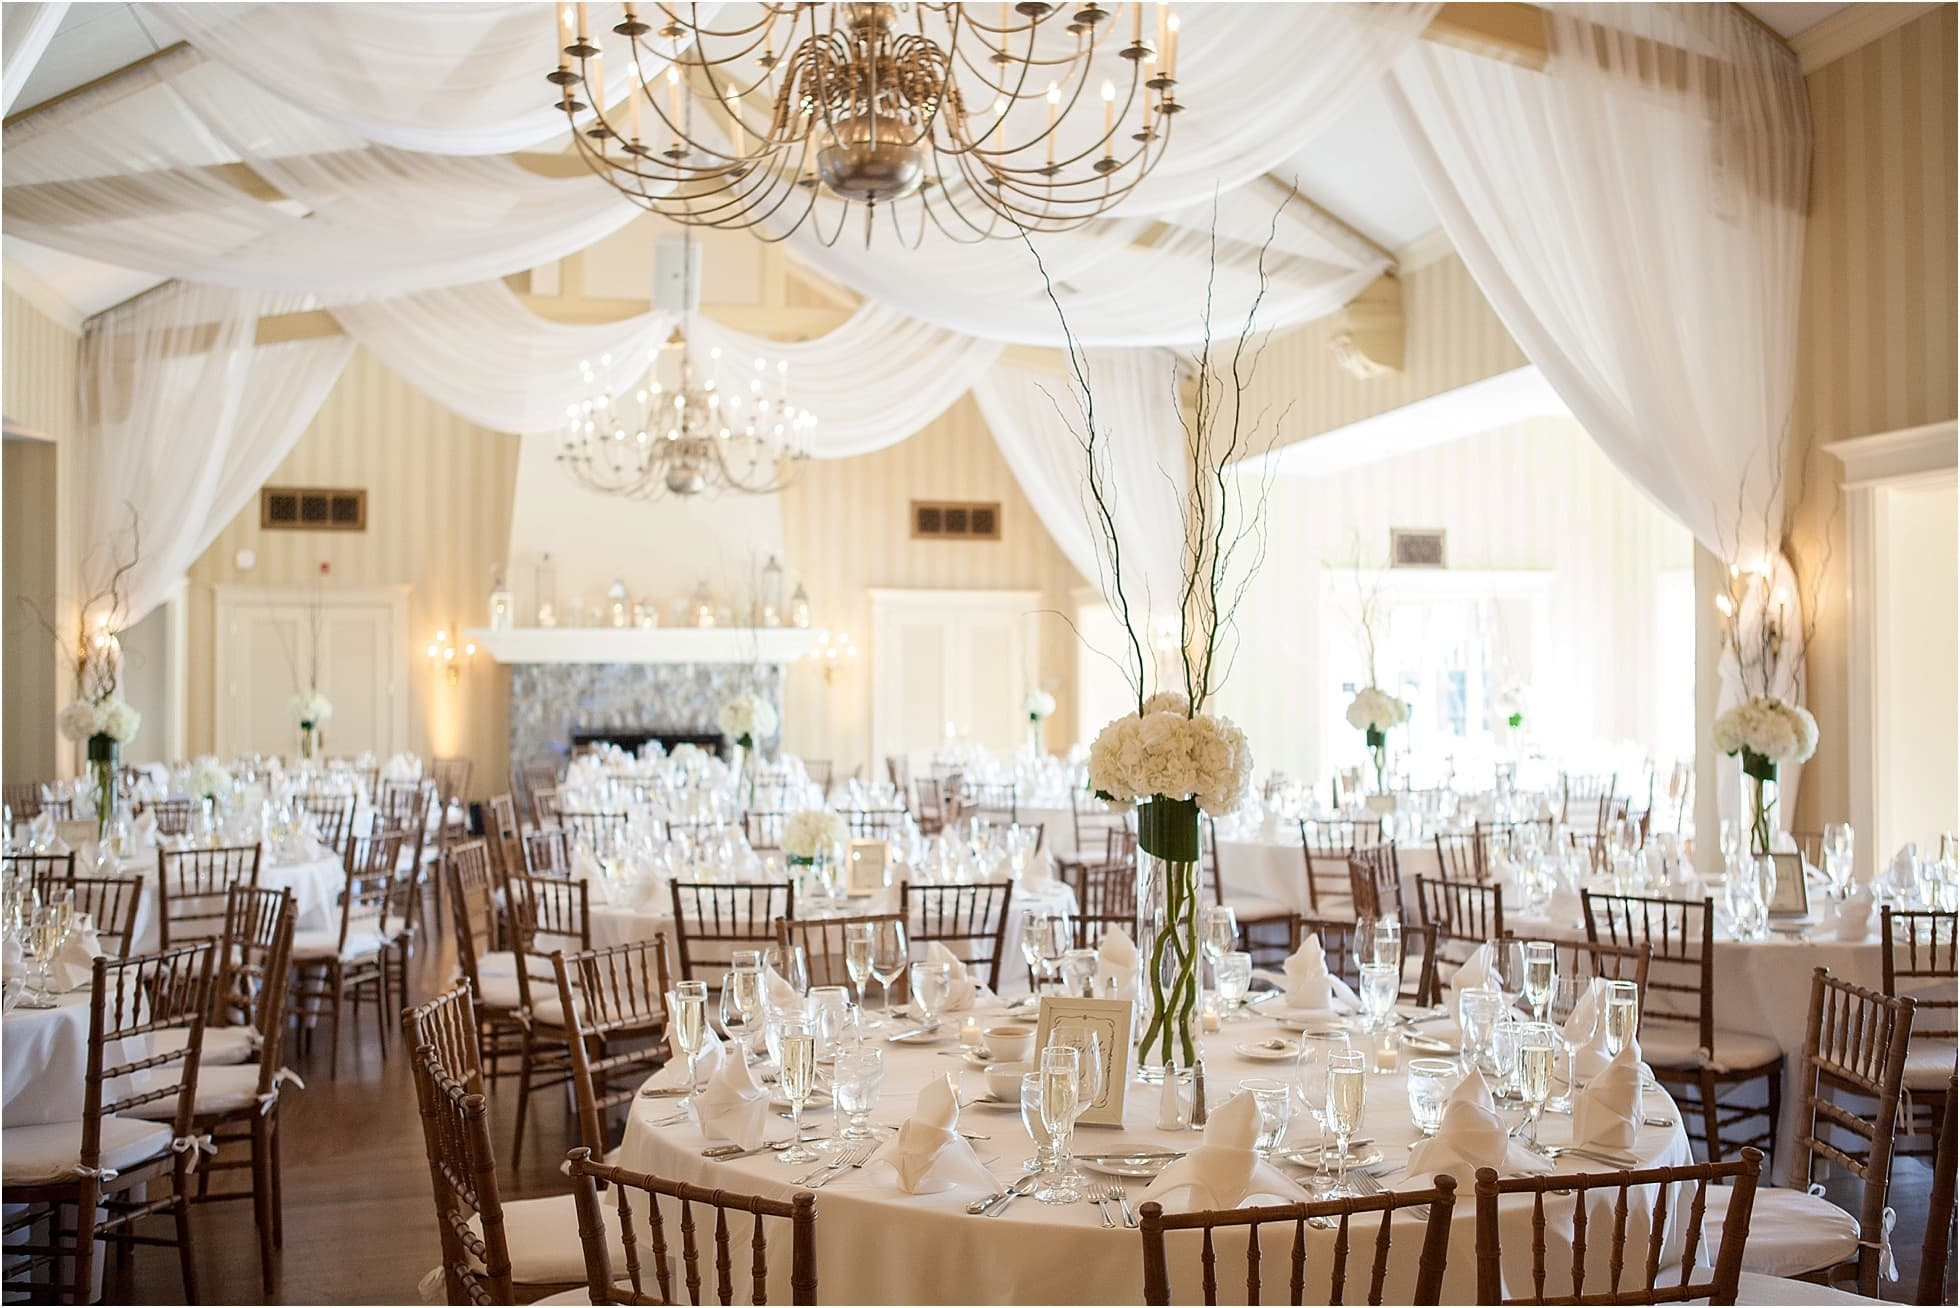 Berkshire Country Club Wedding Photos Of Reception All Covered In White Linen Decor